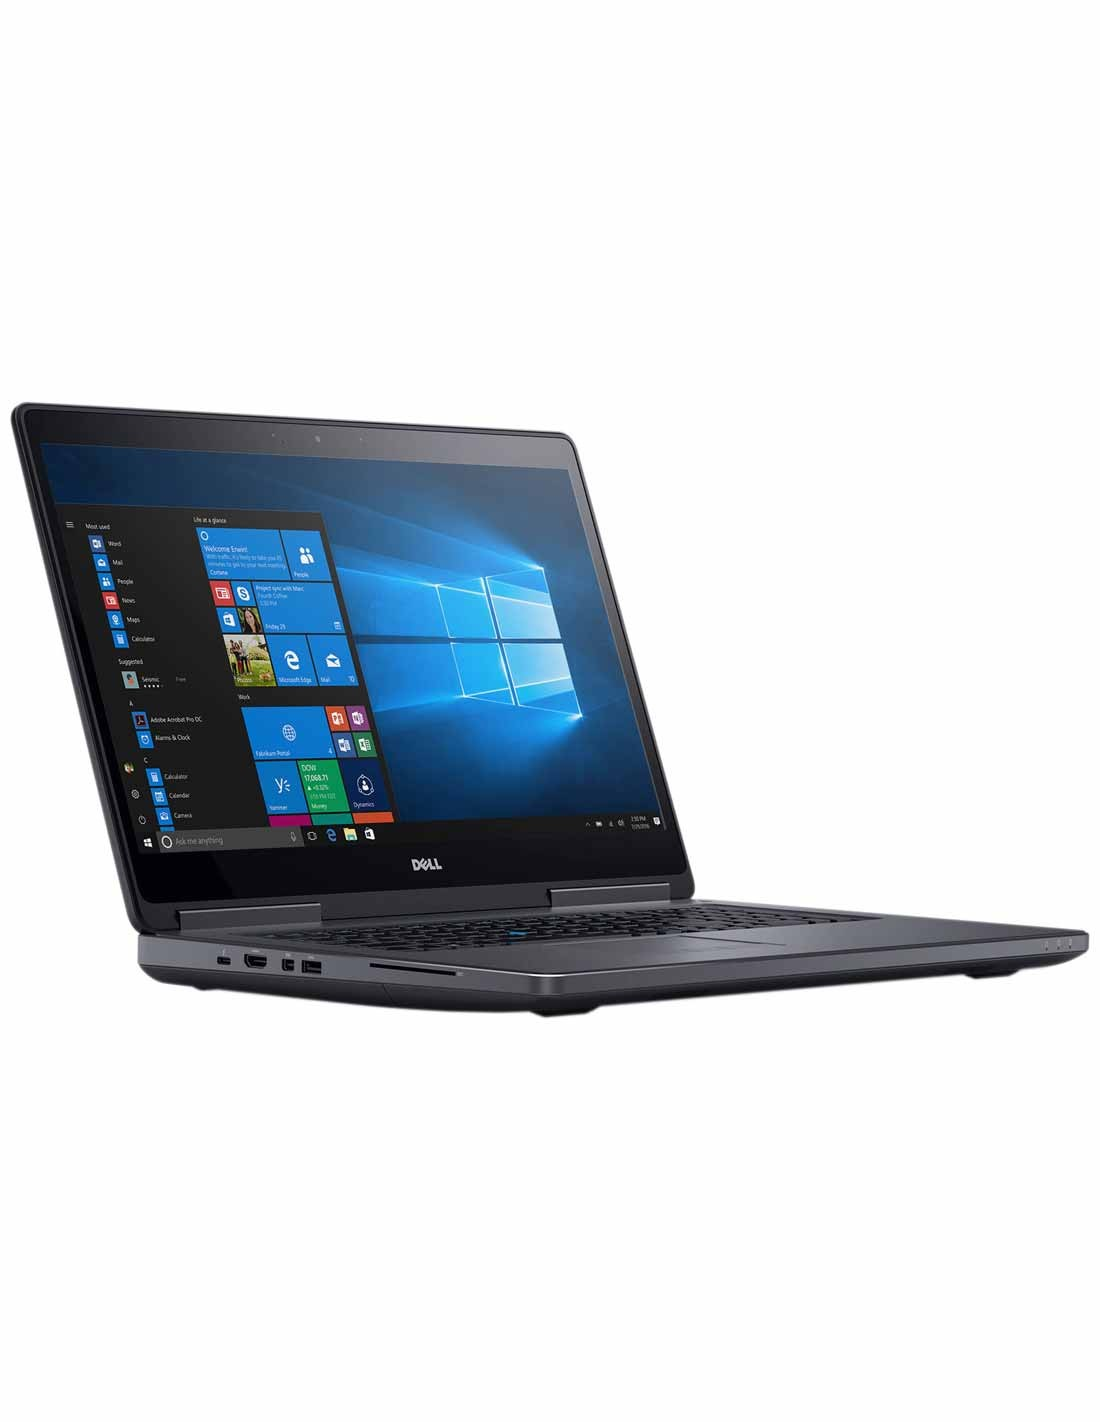 Dell Precision M7720 specs, reviews, images, and photos in Dubai Online store